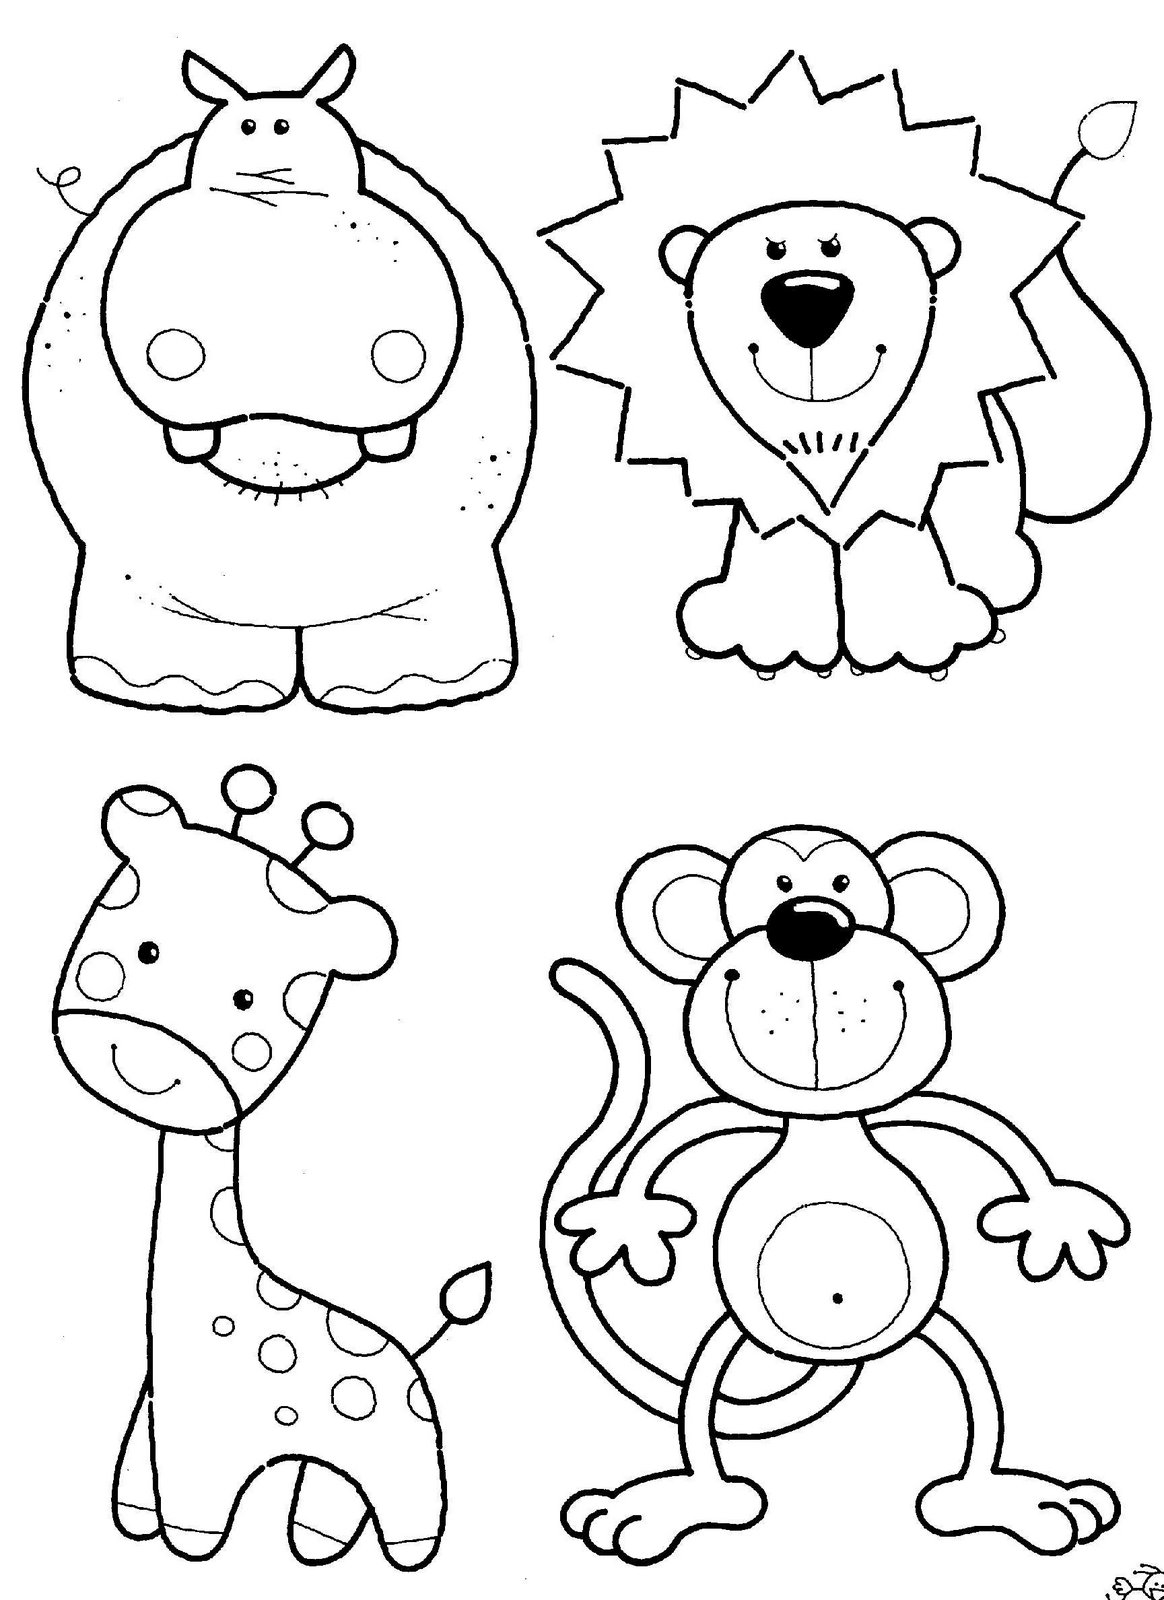 zoo animal coloring zoo coloring pages free download on clipartmag animal zoo coloring